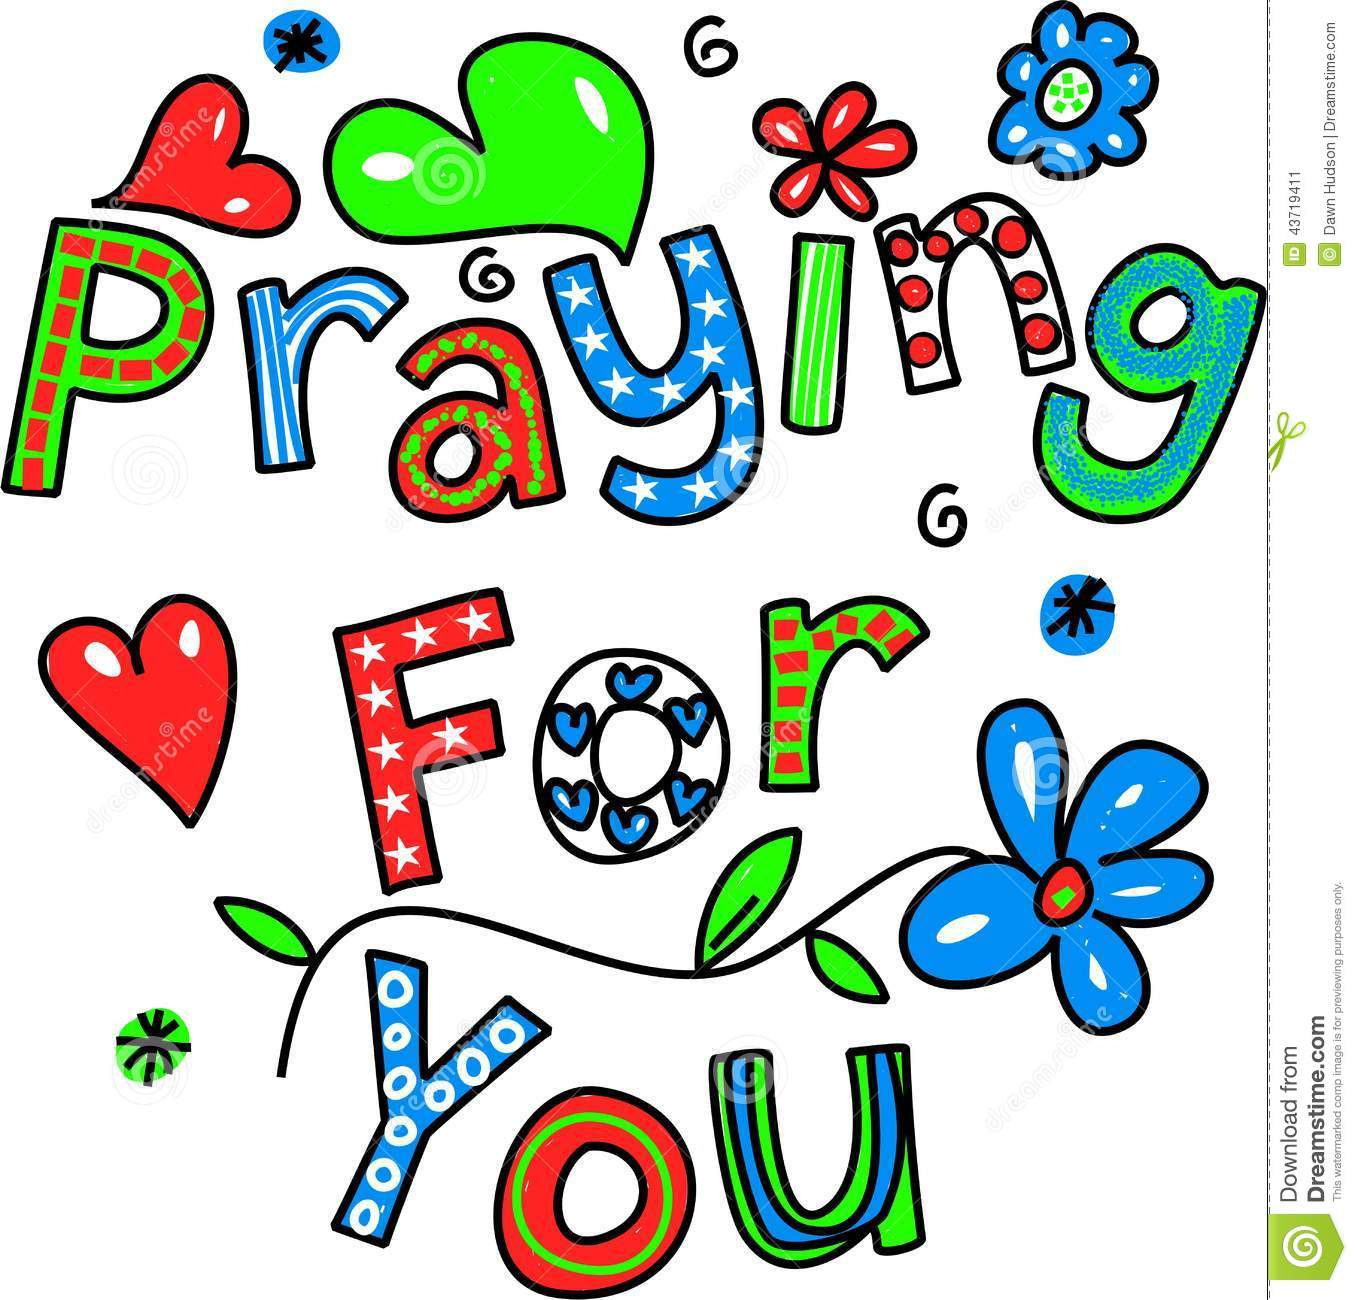 Praying For You Cartoon Text Expression Stock Illustration